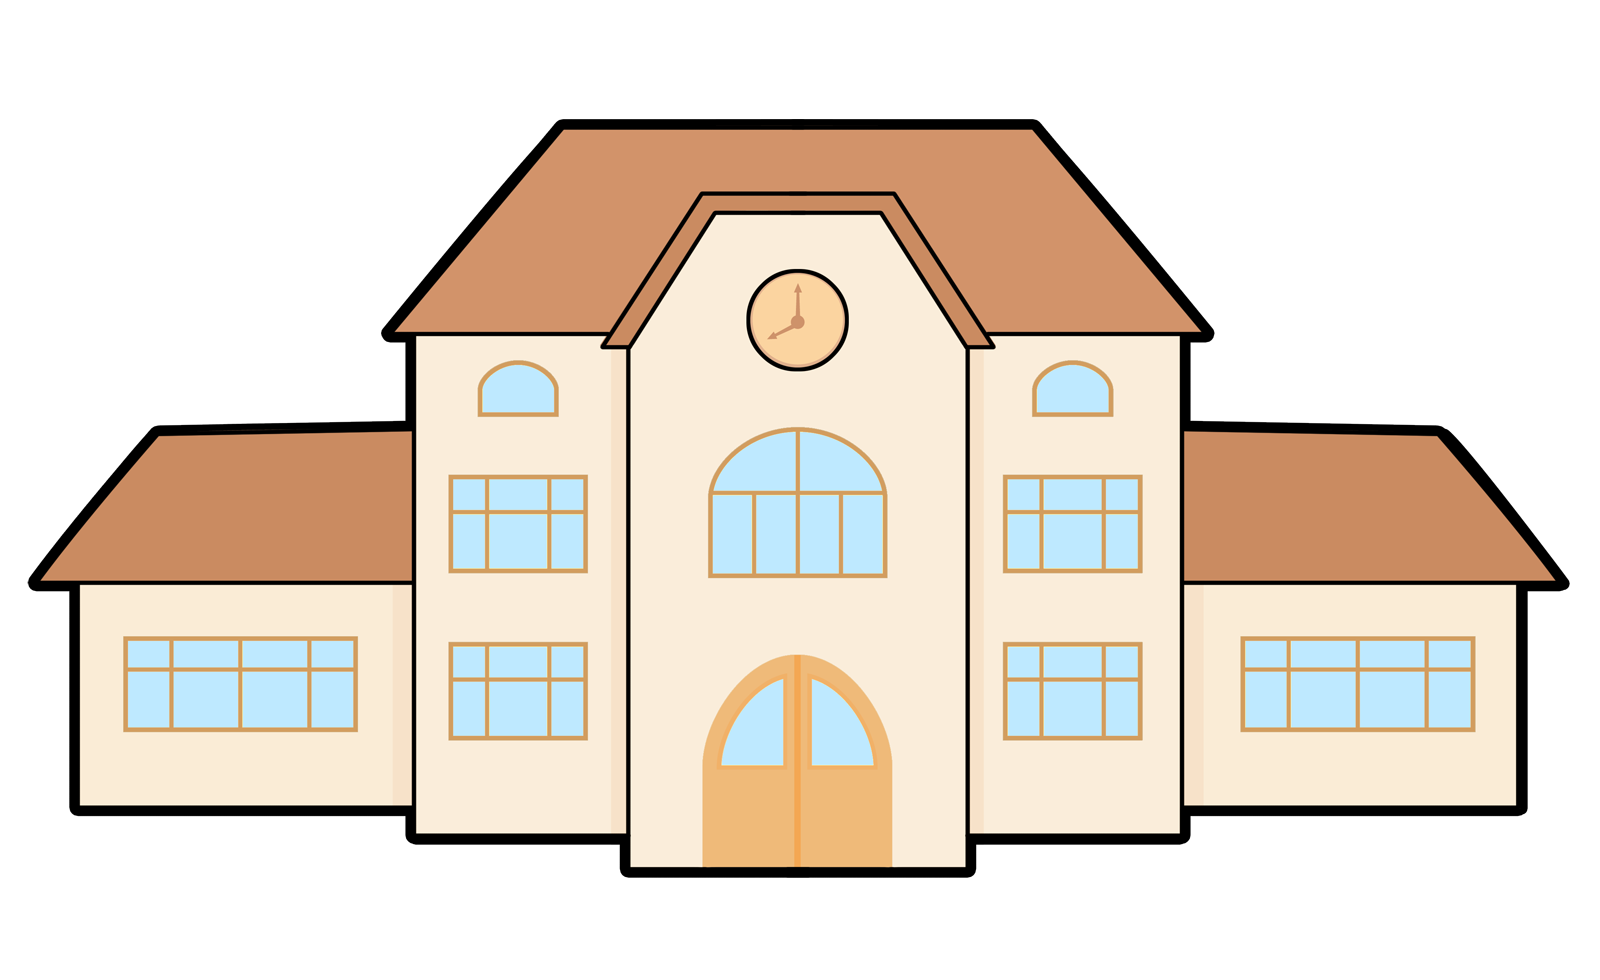 1600x980 Building Free To Use Clip Art 2